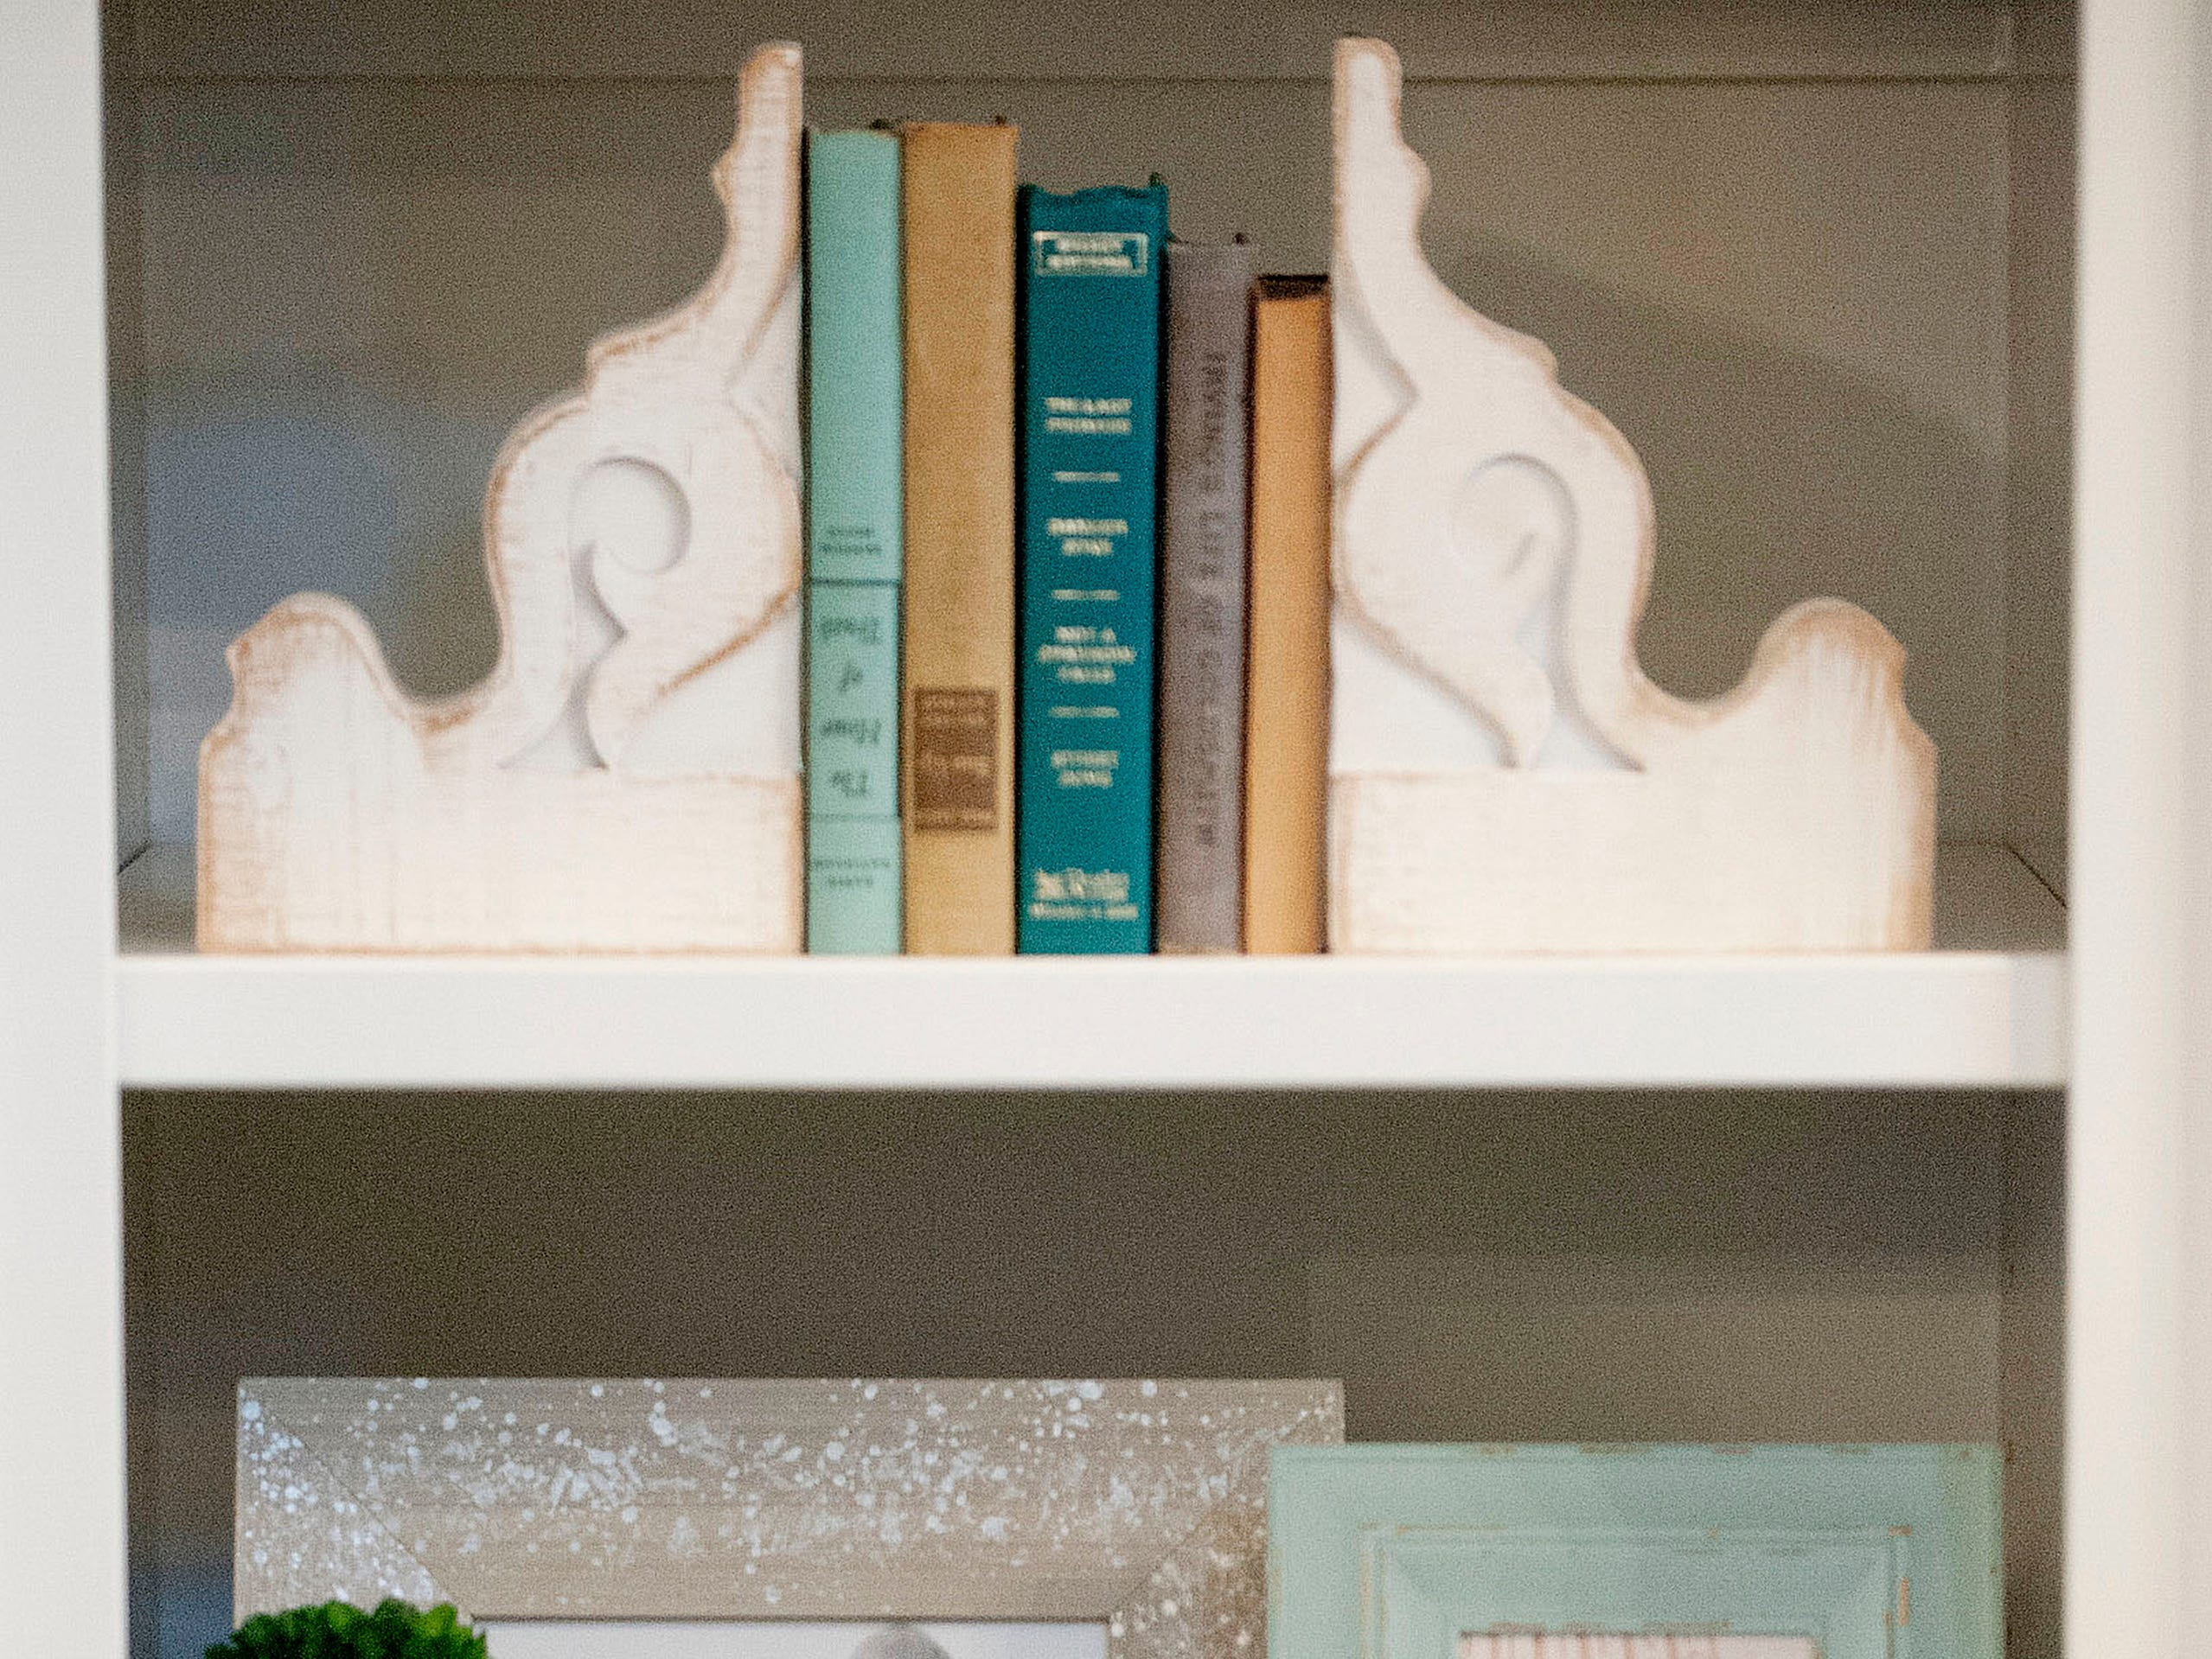 One of the built-in bookcases in the Hannah living room features family photos.01 March 2019